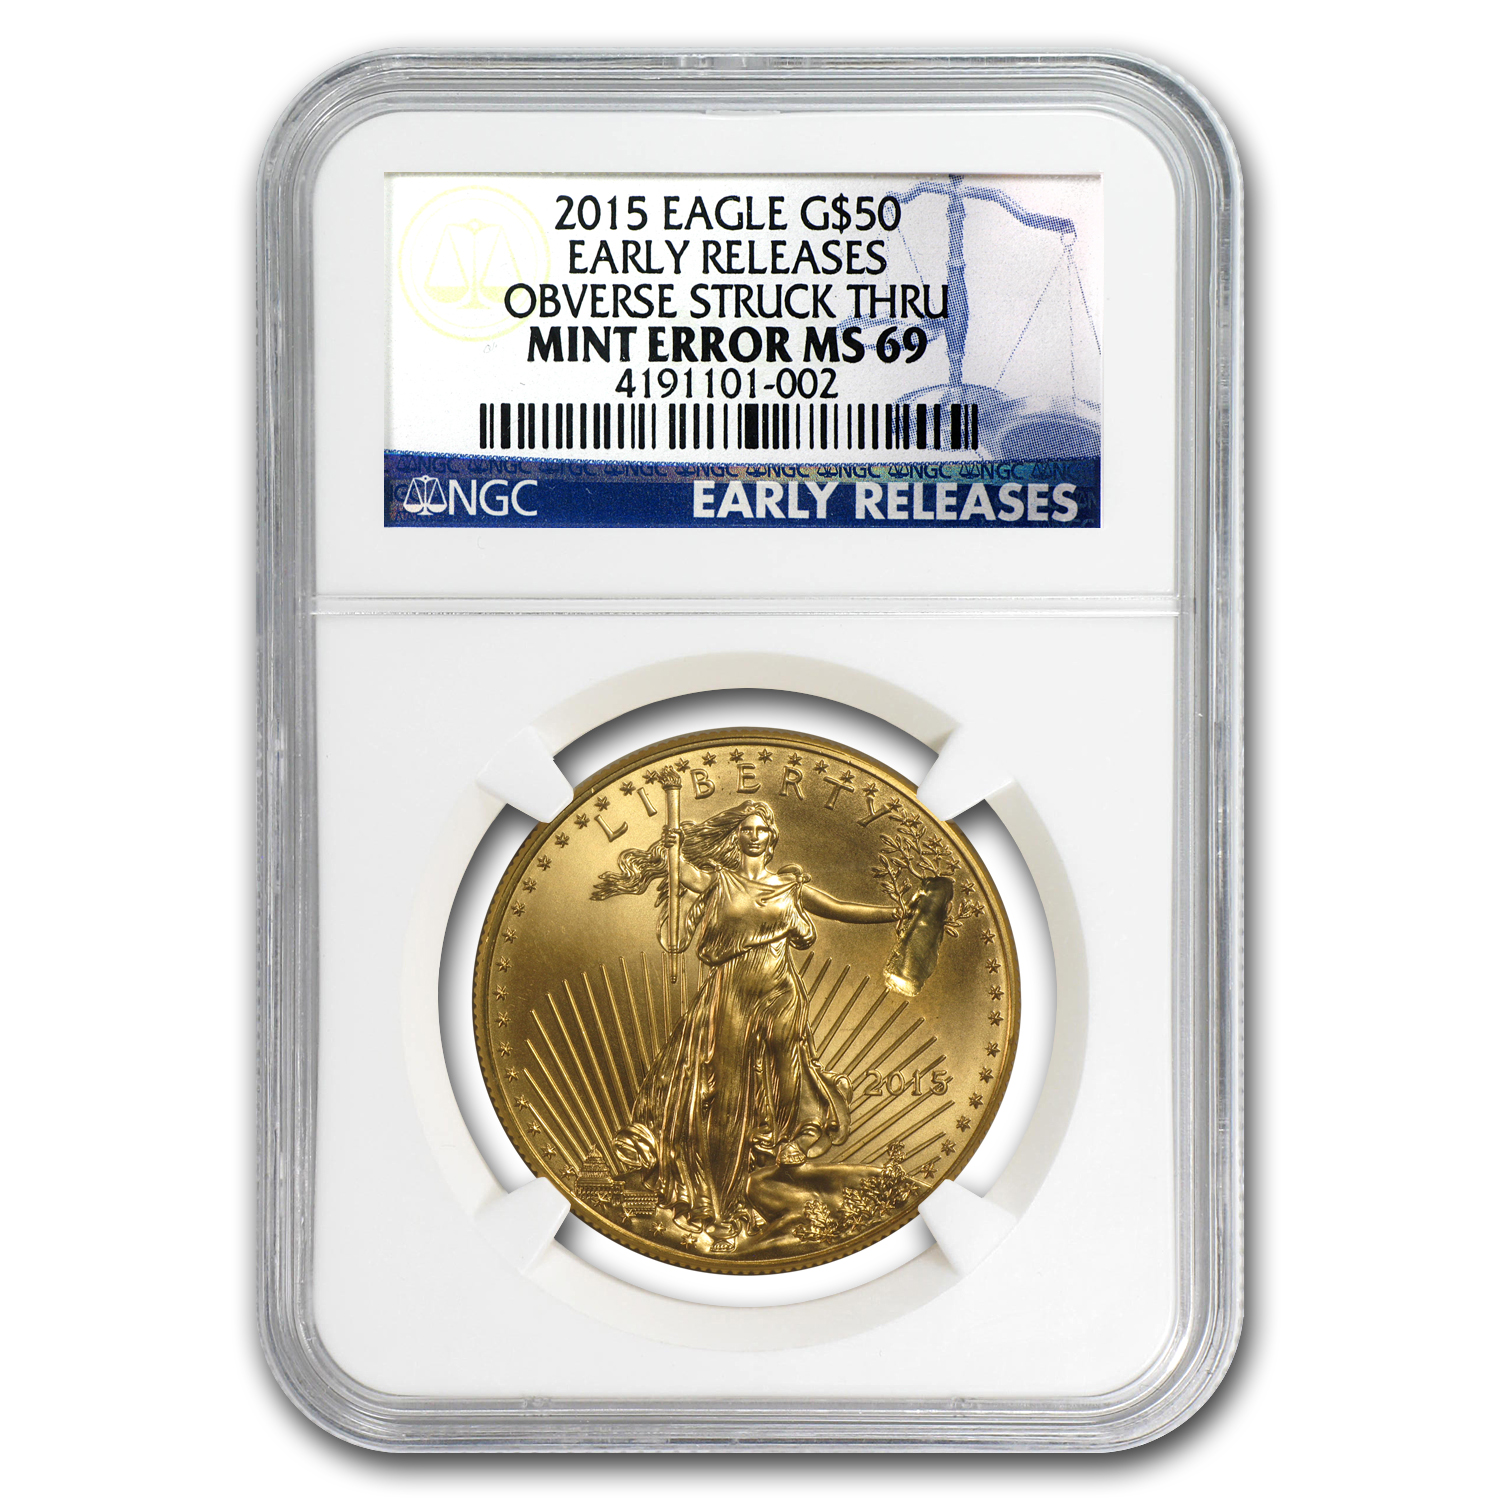 2015 1 oz Gold Eagle Mint Error MS-69 NGC (Early Releases)